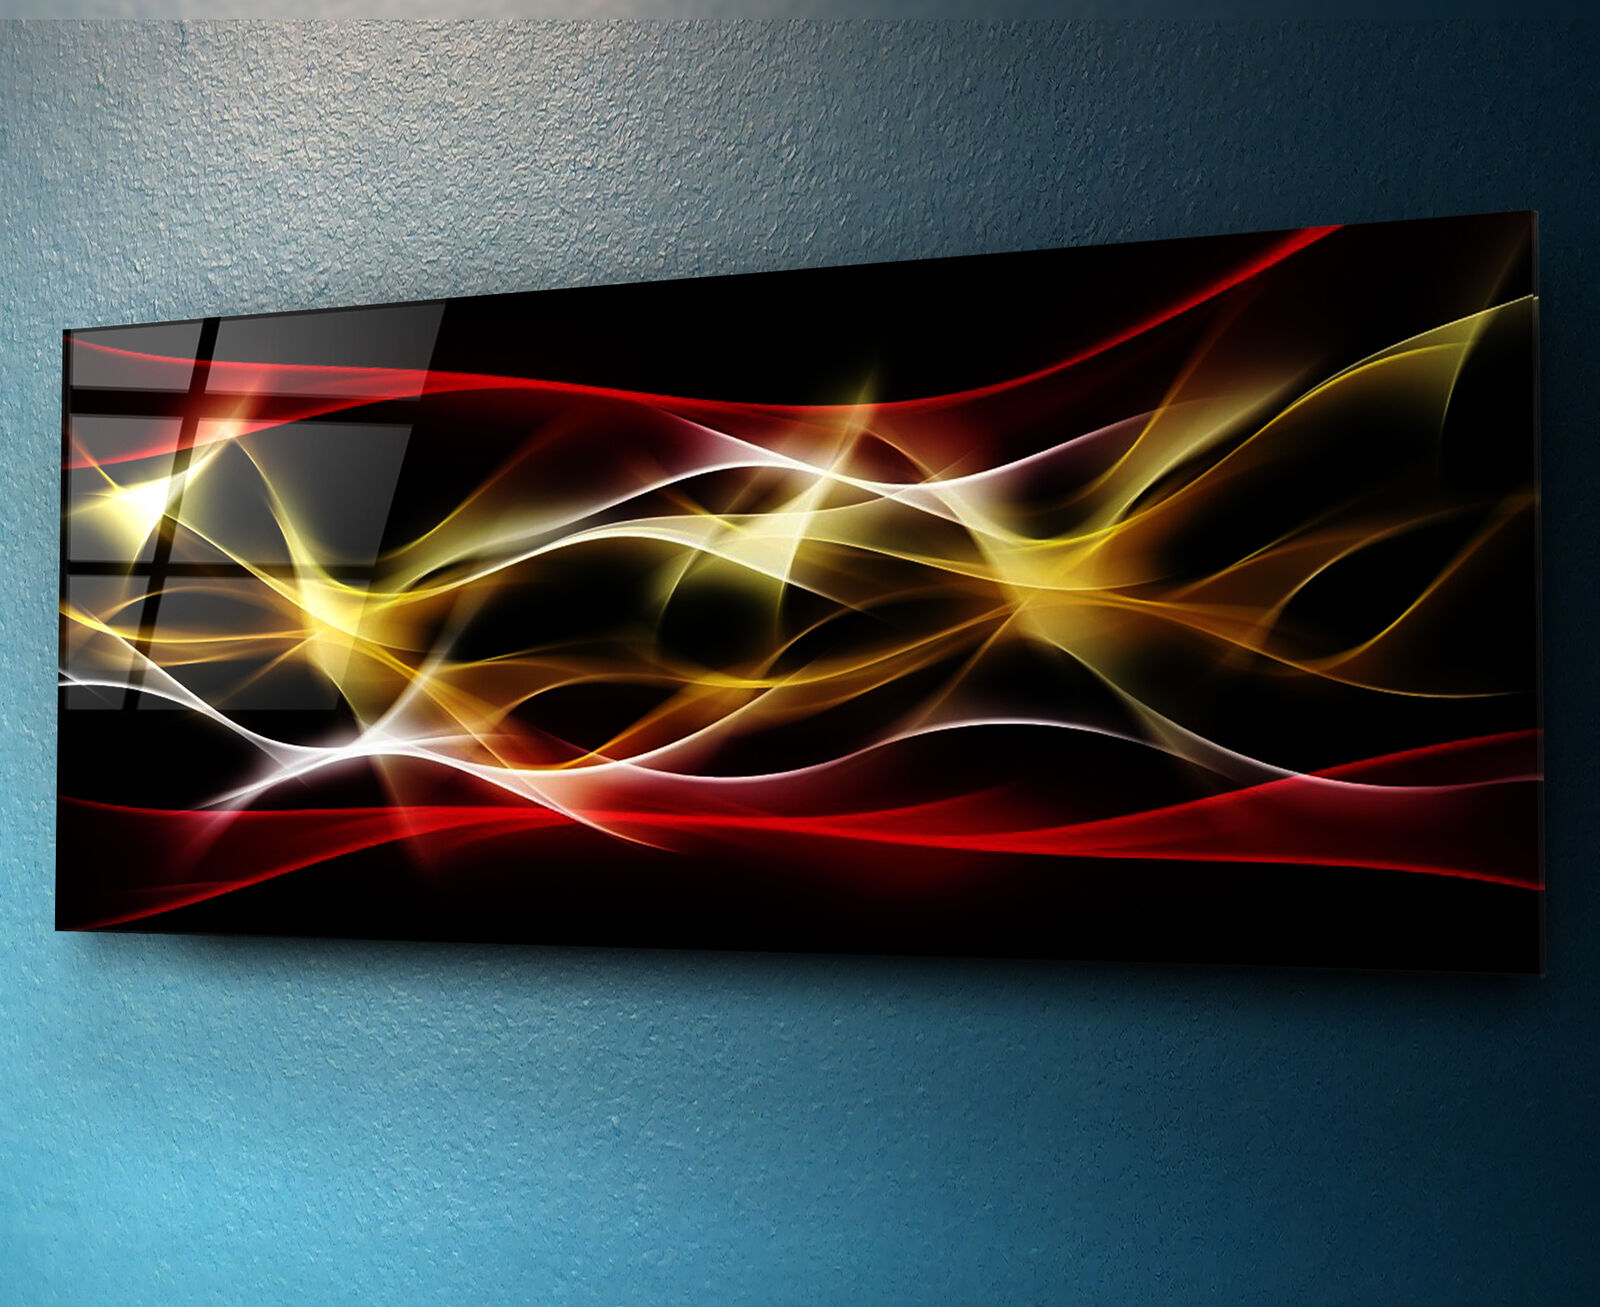 Glass Print Wall Art 125x50cm Image on Glass Decorative Wall Picture 83328267